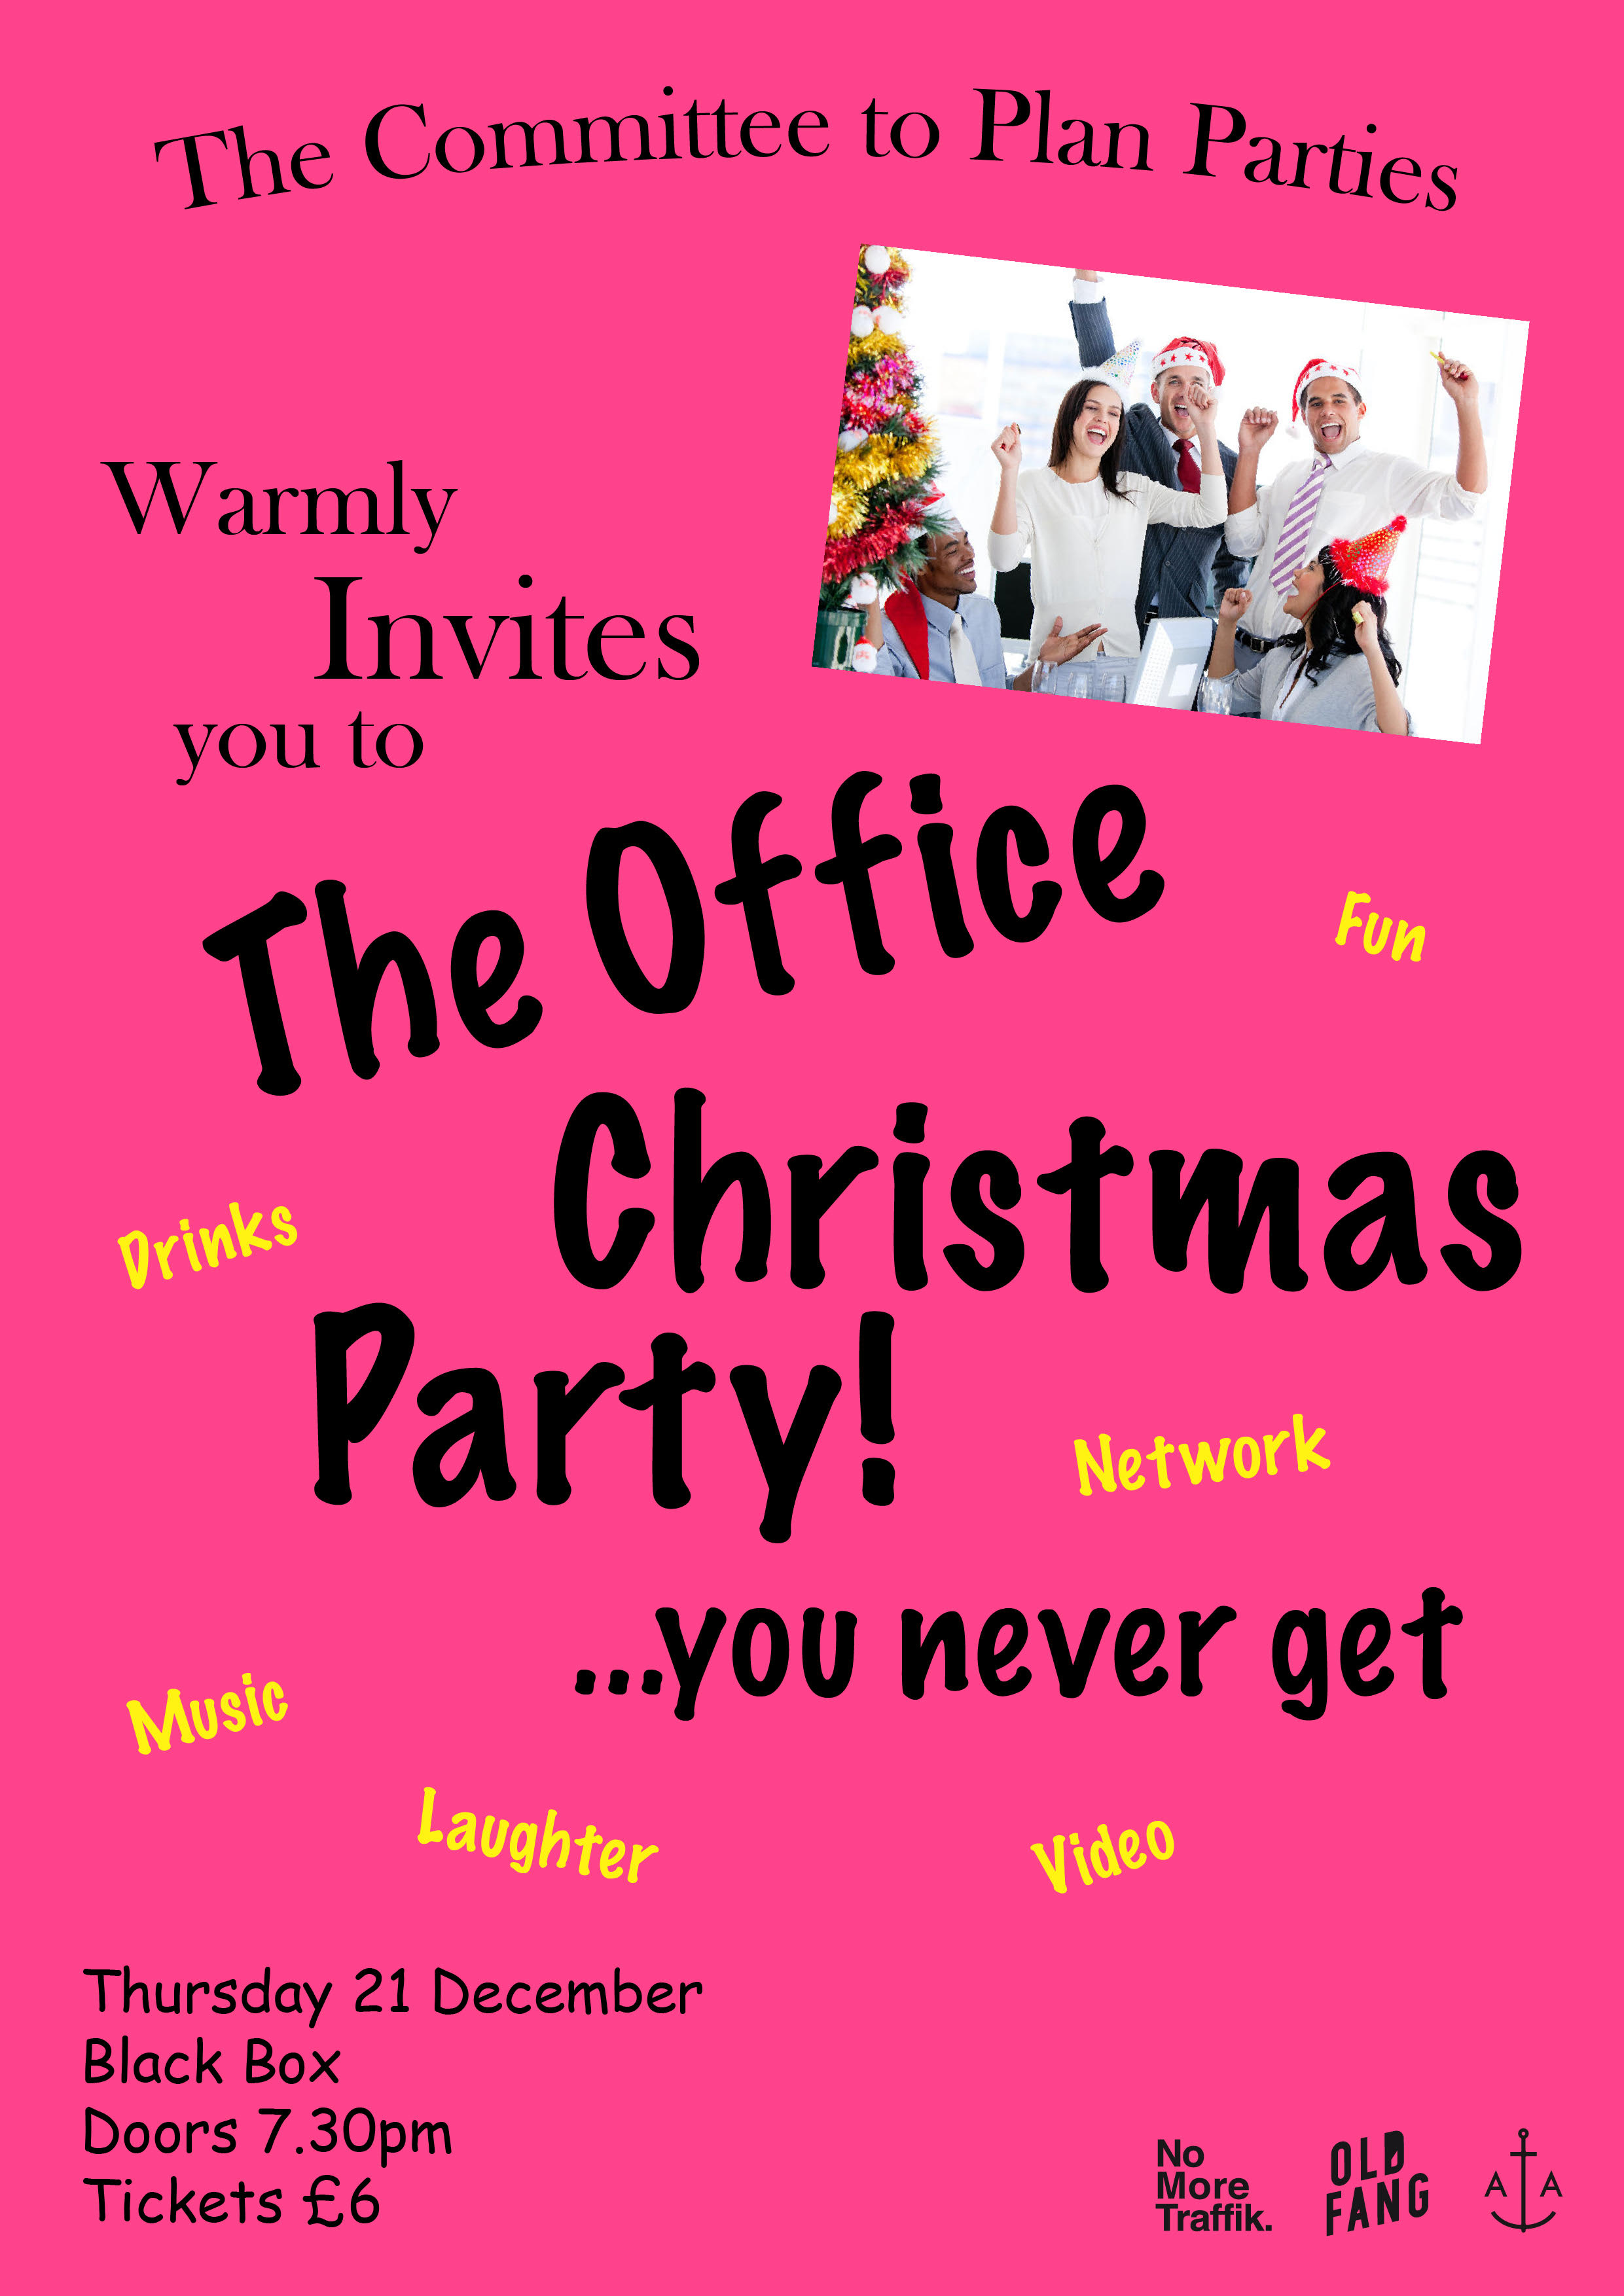 CANCELLED! The Office Christmas Party! ...you never get